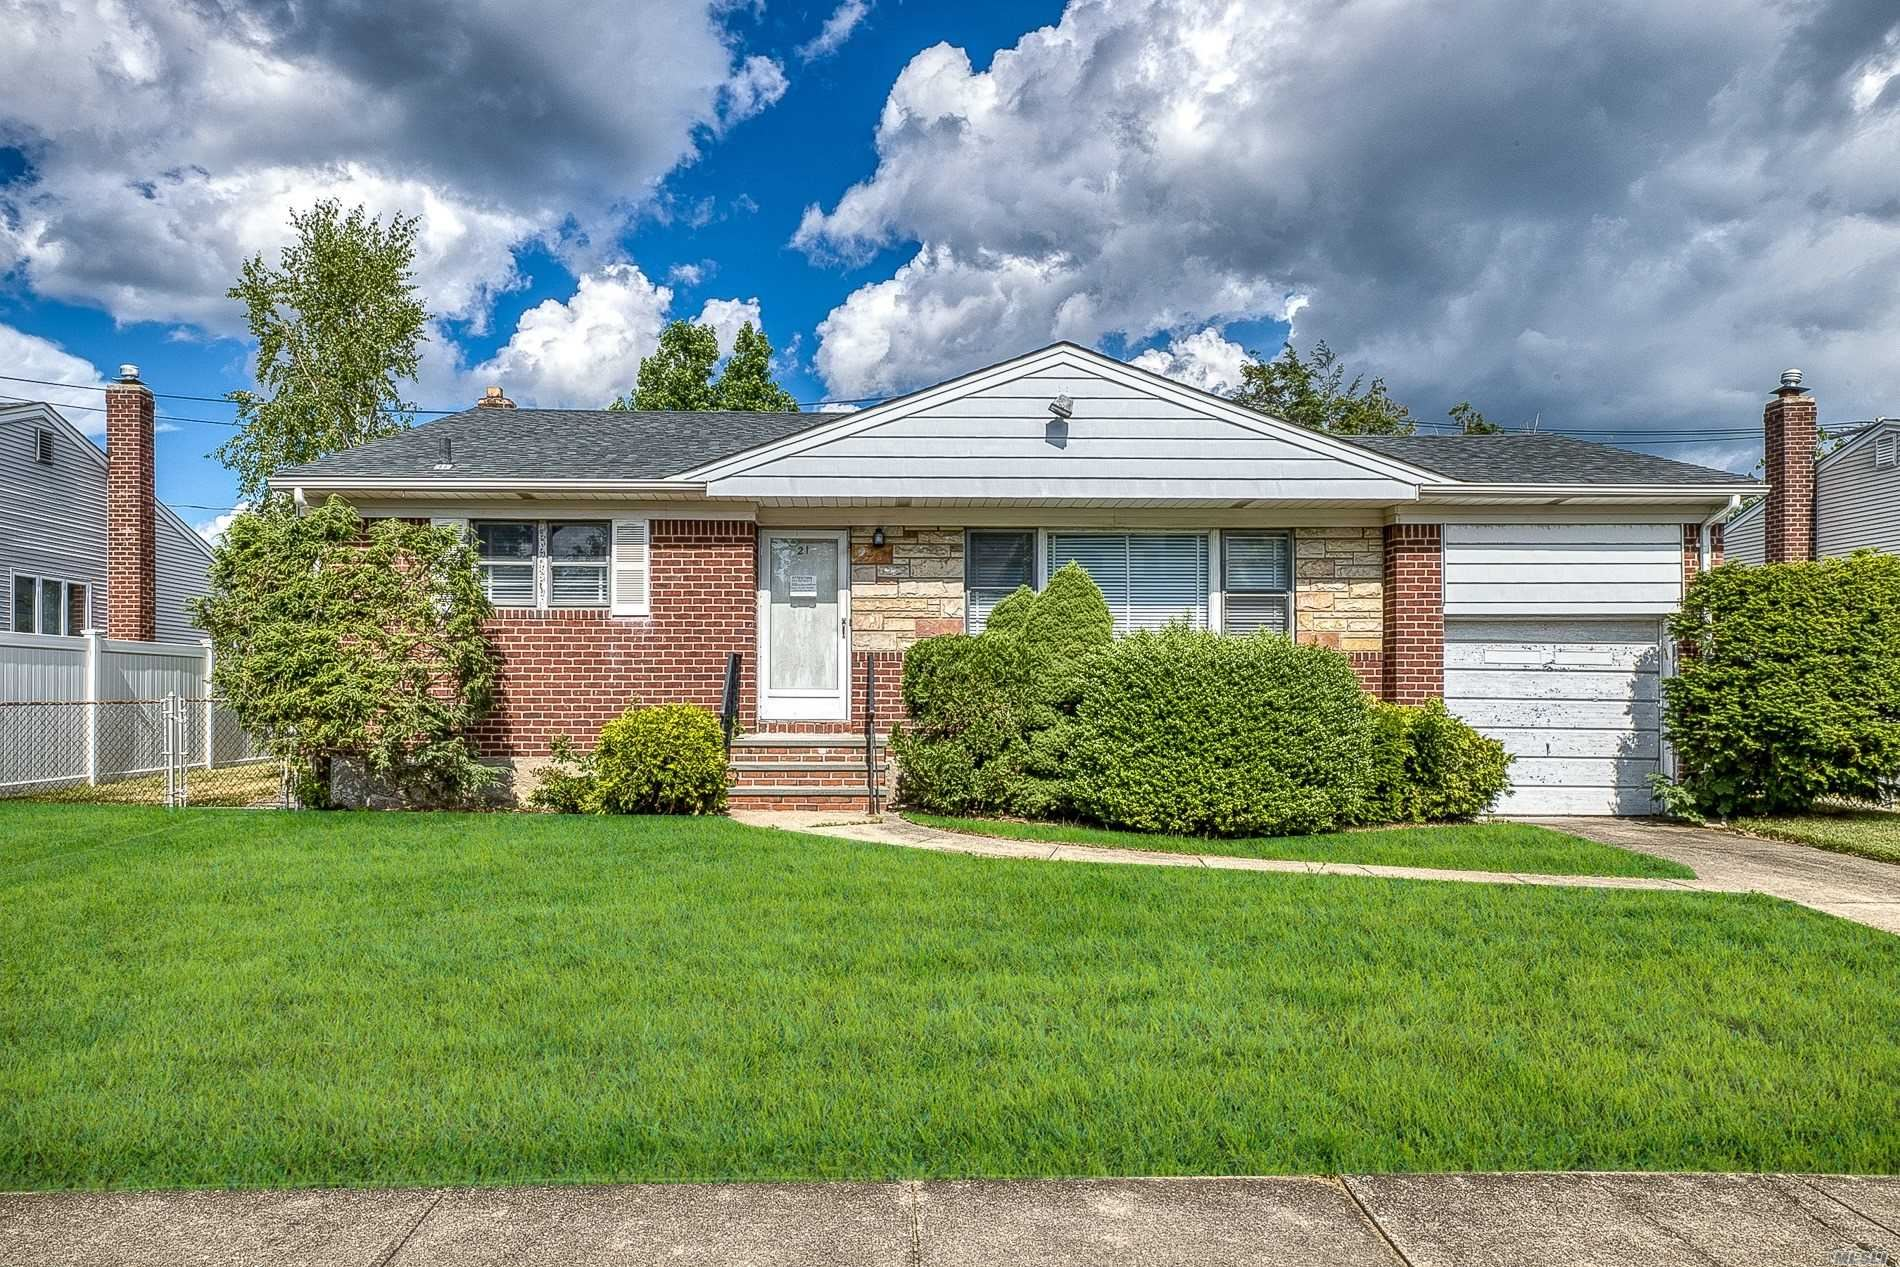 21 Lucille Drive, Syosset, NY 11791 - MLS#: 3229413